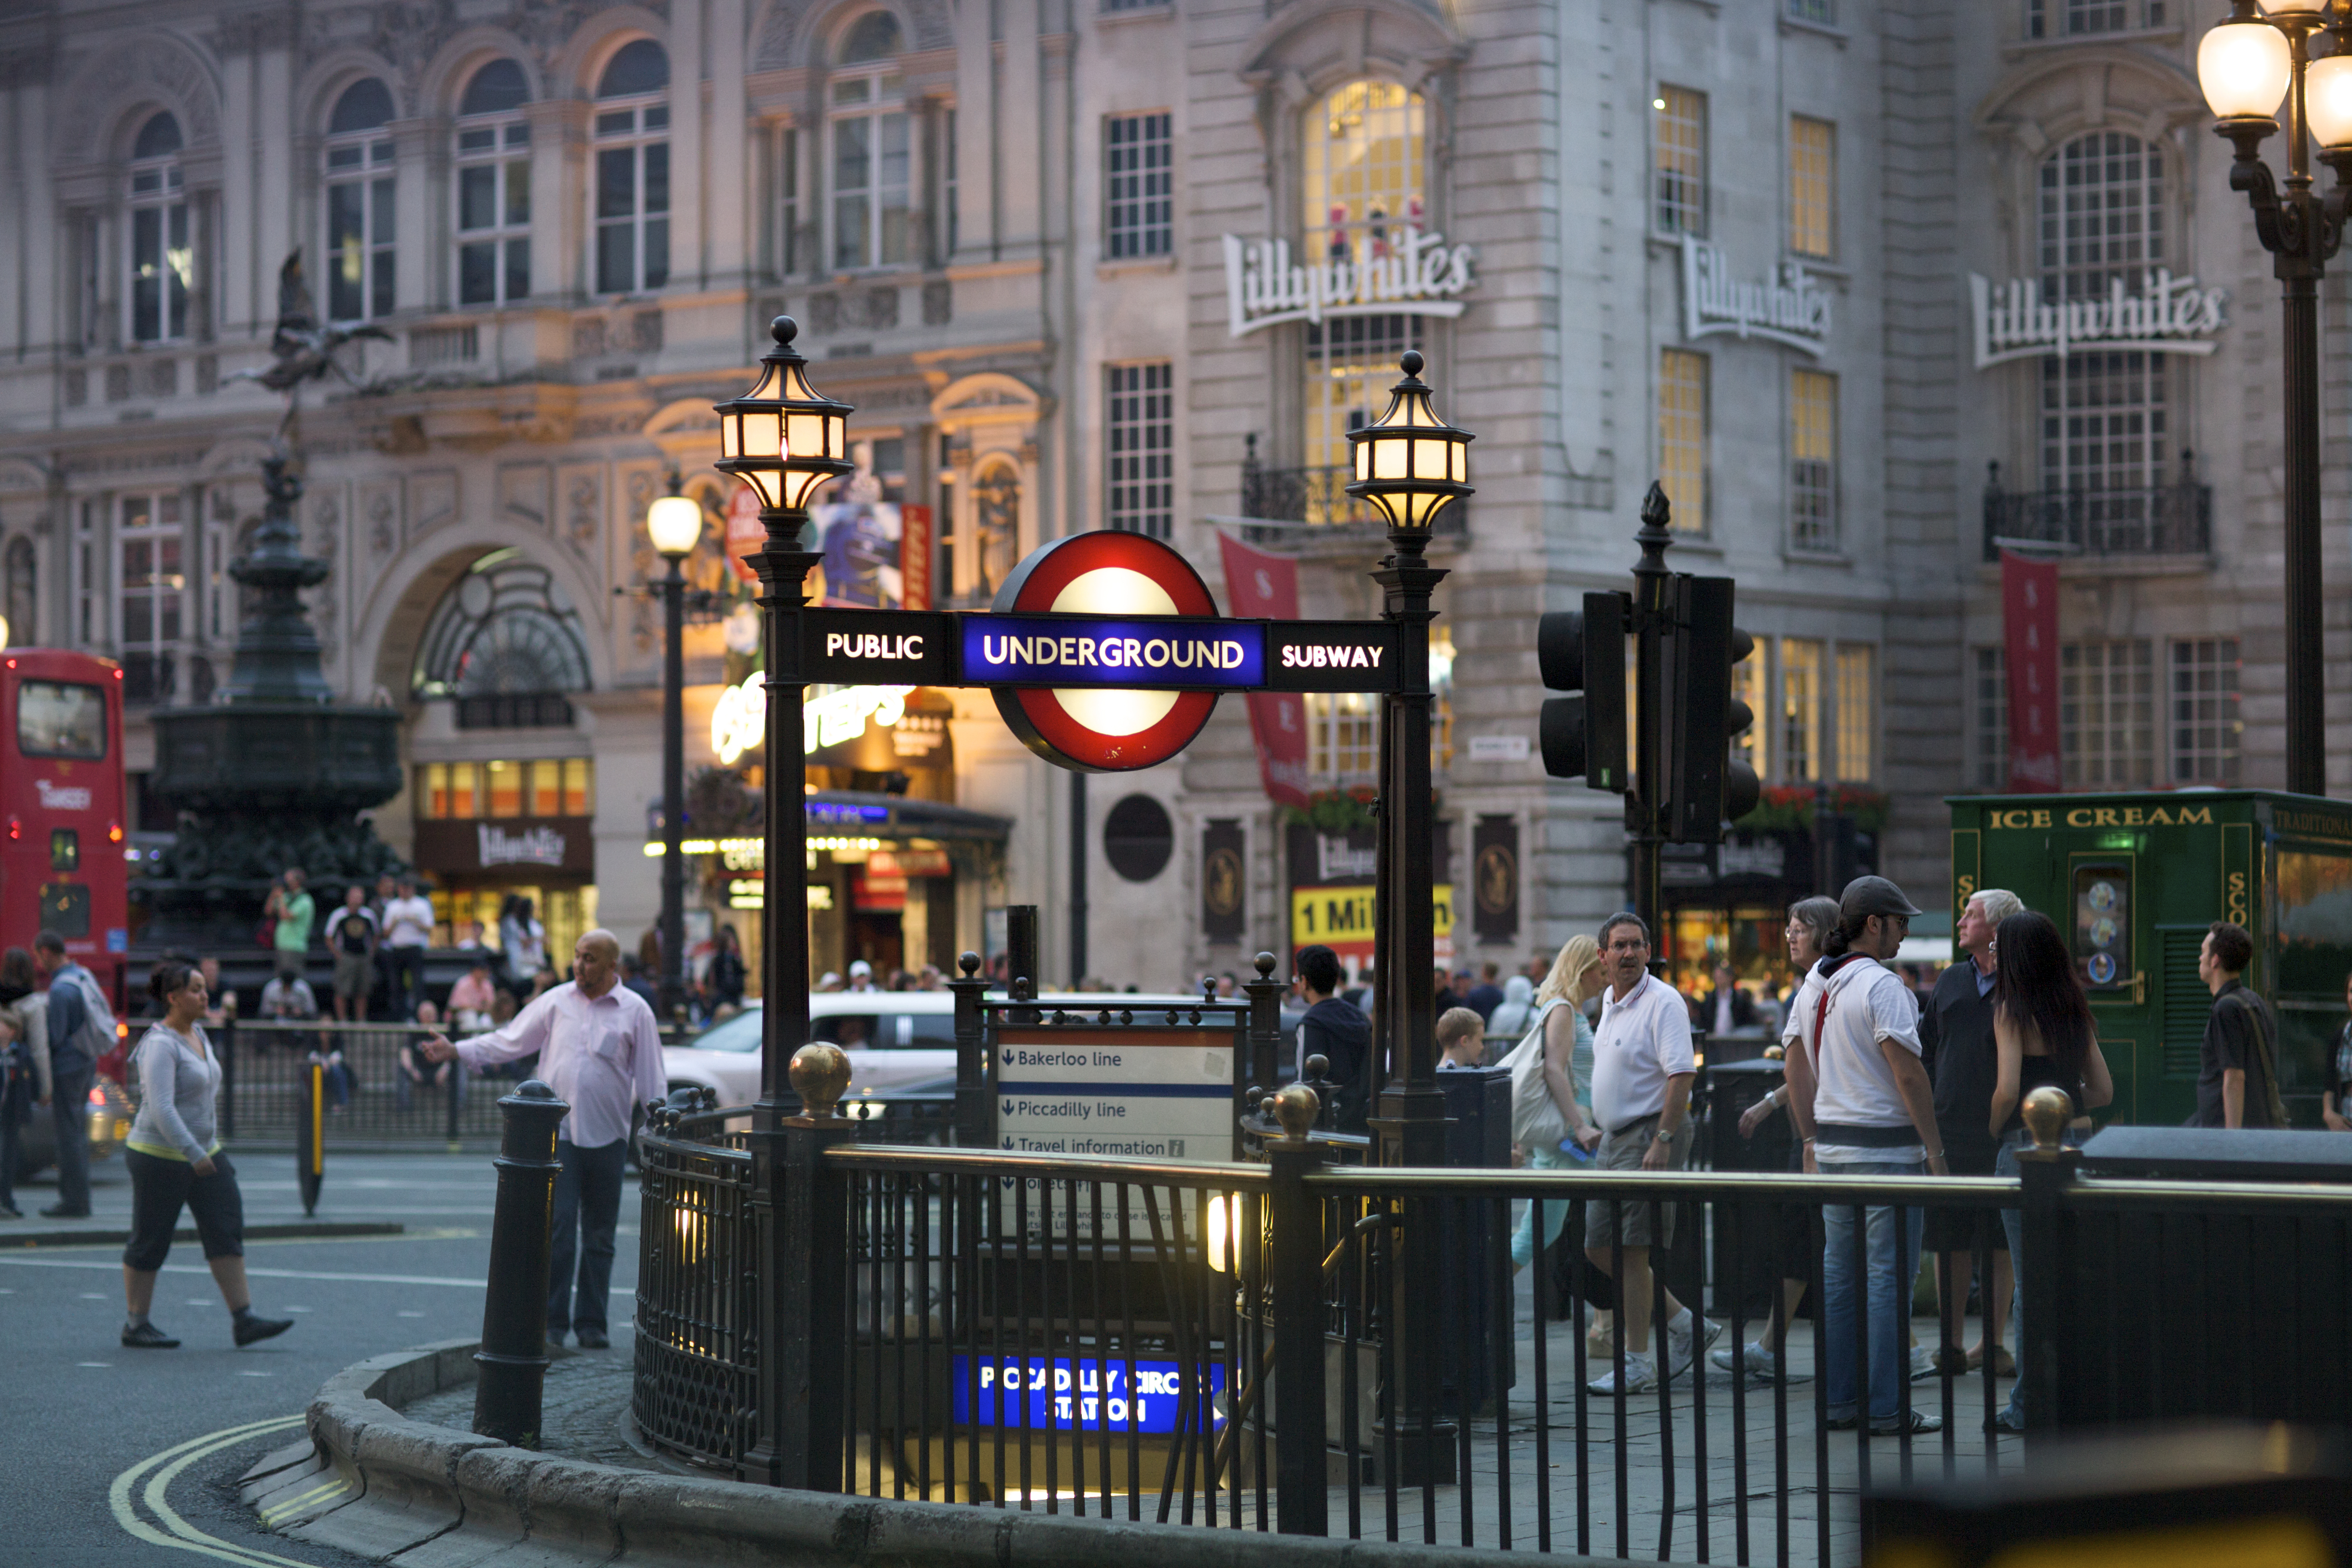 Piccadilly Circus street at night with underground tube station on June 28, 2009 in London, England. London's underground railway is the oldest in the world, dating back to 1863. (Stephen Bures/Shutterstock)